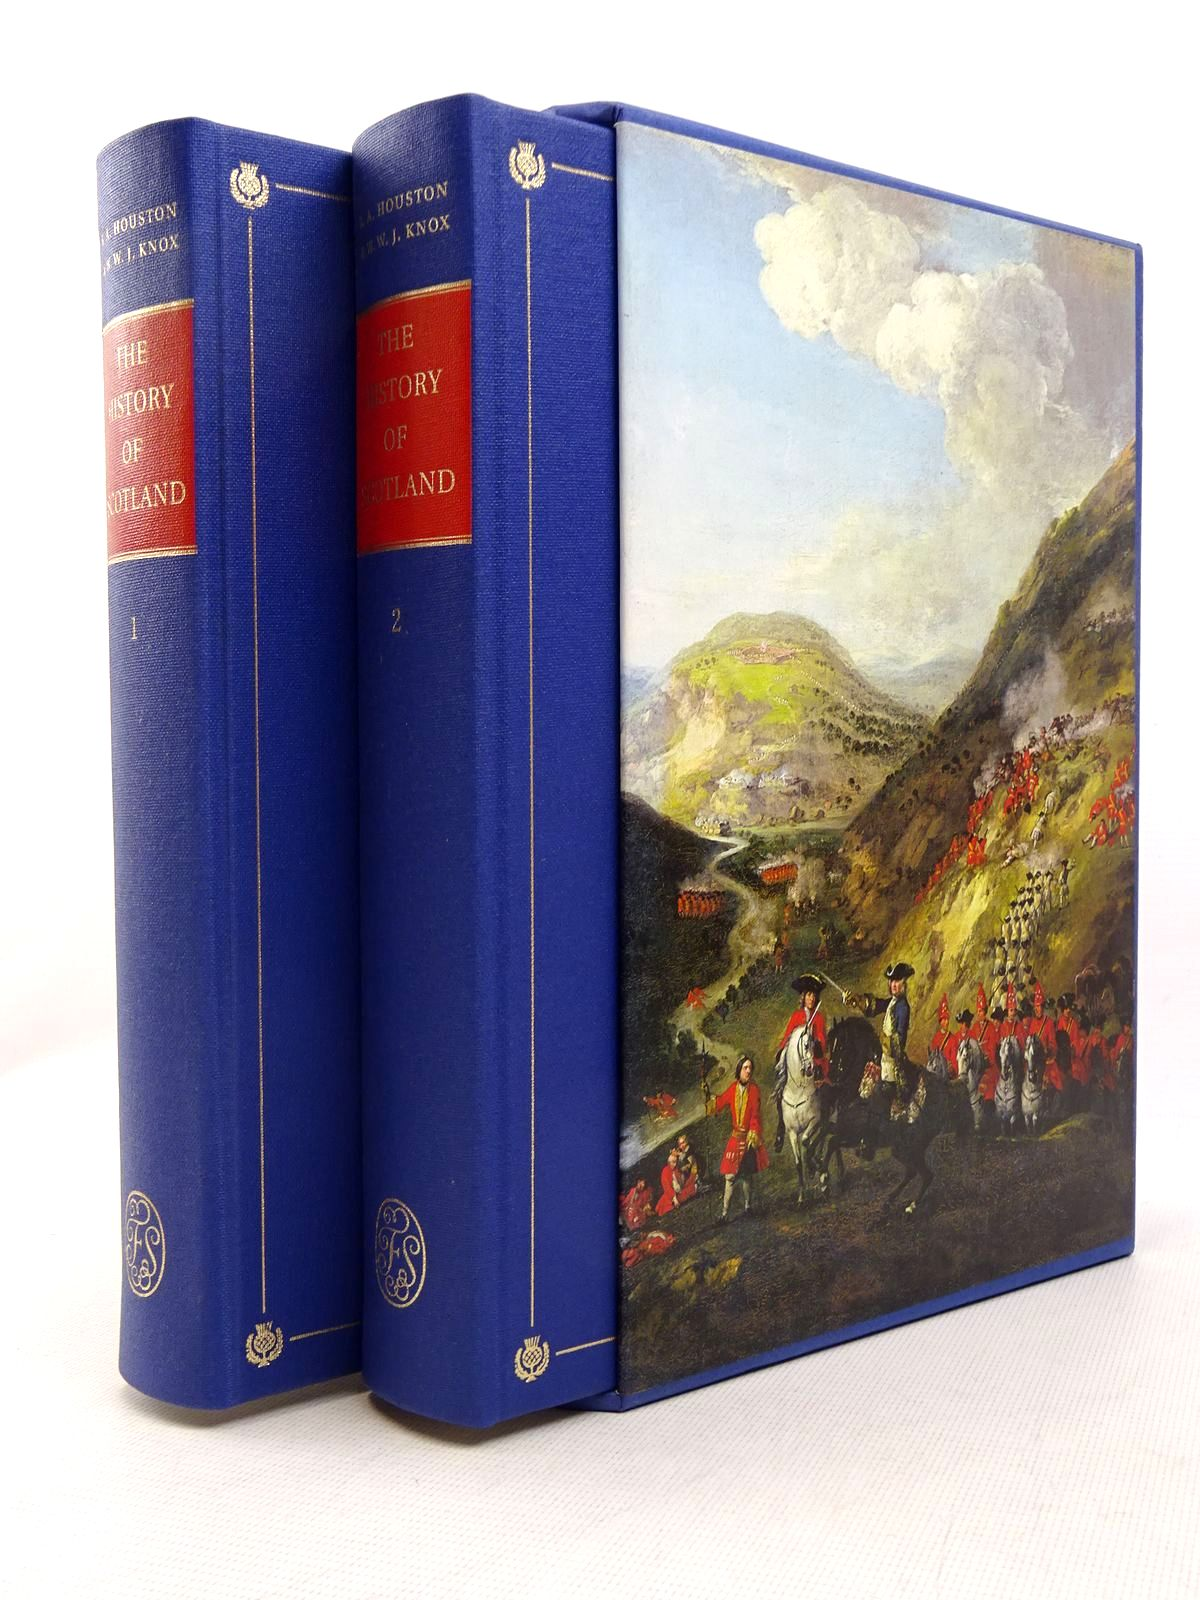 Photo of THE HISTORY OF SCOTLAND FROM THE EARLIEST TIMES TO THE PRESENT DAY (2 VOLUMES) written by Houston, R.A.<br />Knox, W.W.J. published by Folio Society (STOCK CODE: 1817153)  for sale by Stella & Rose's Books